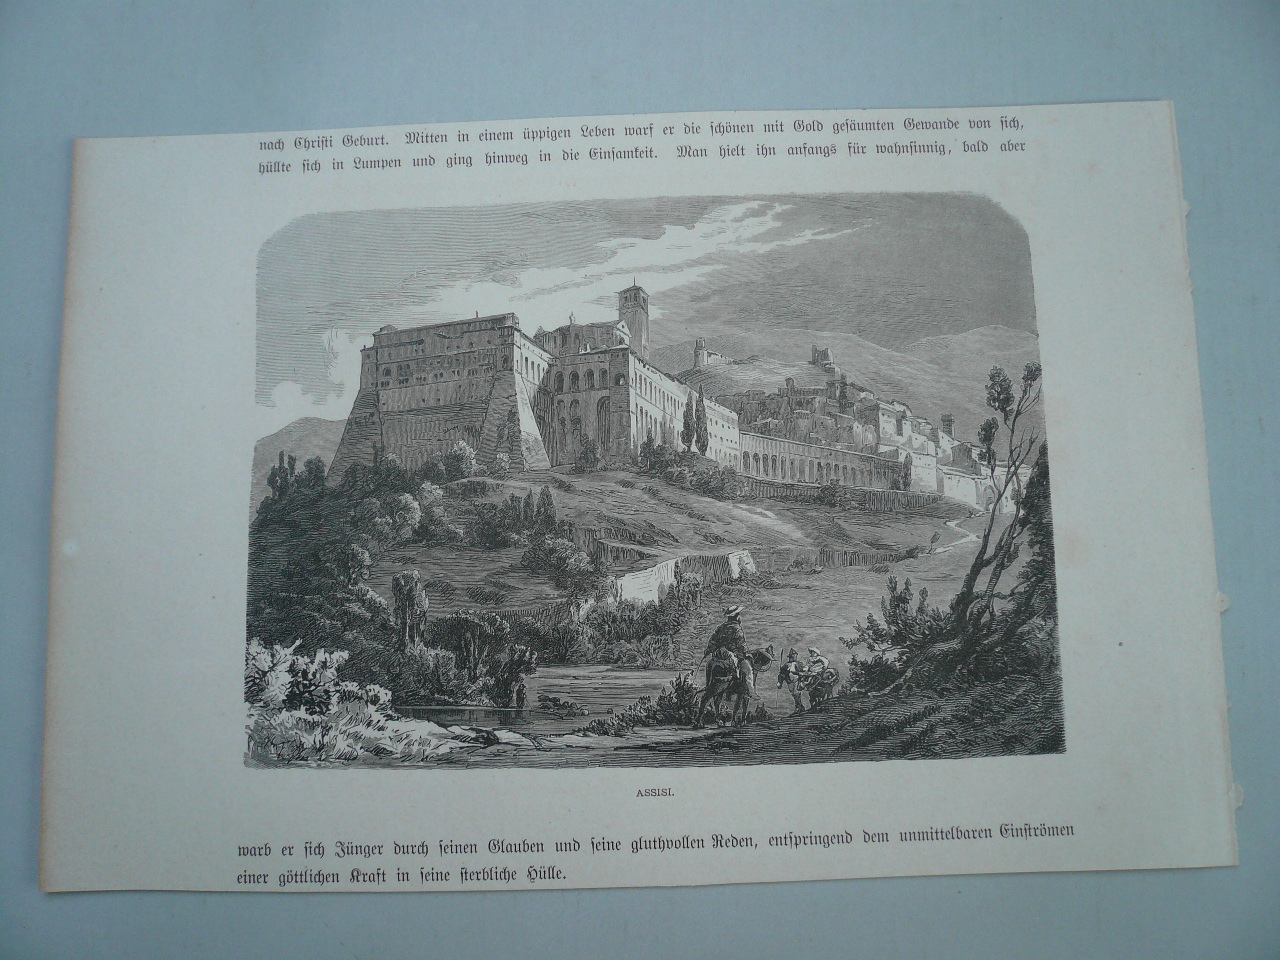 Assisi, anno 1880, Holzstich, 13 x 19 cm...